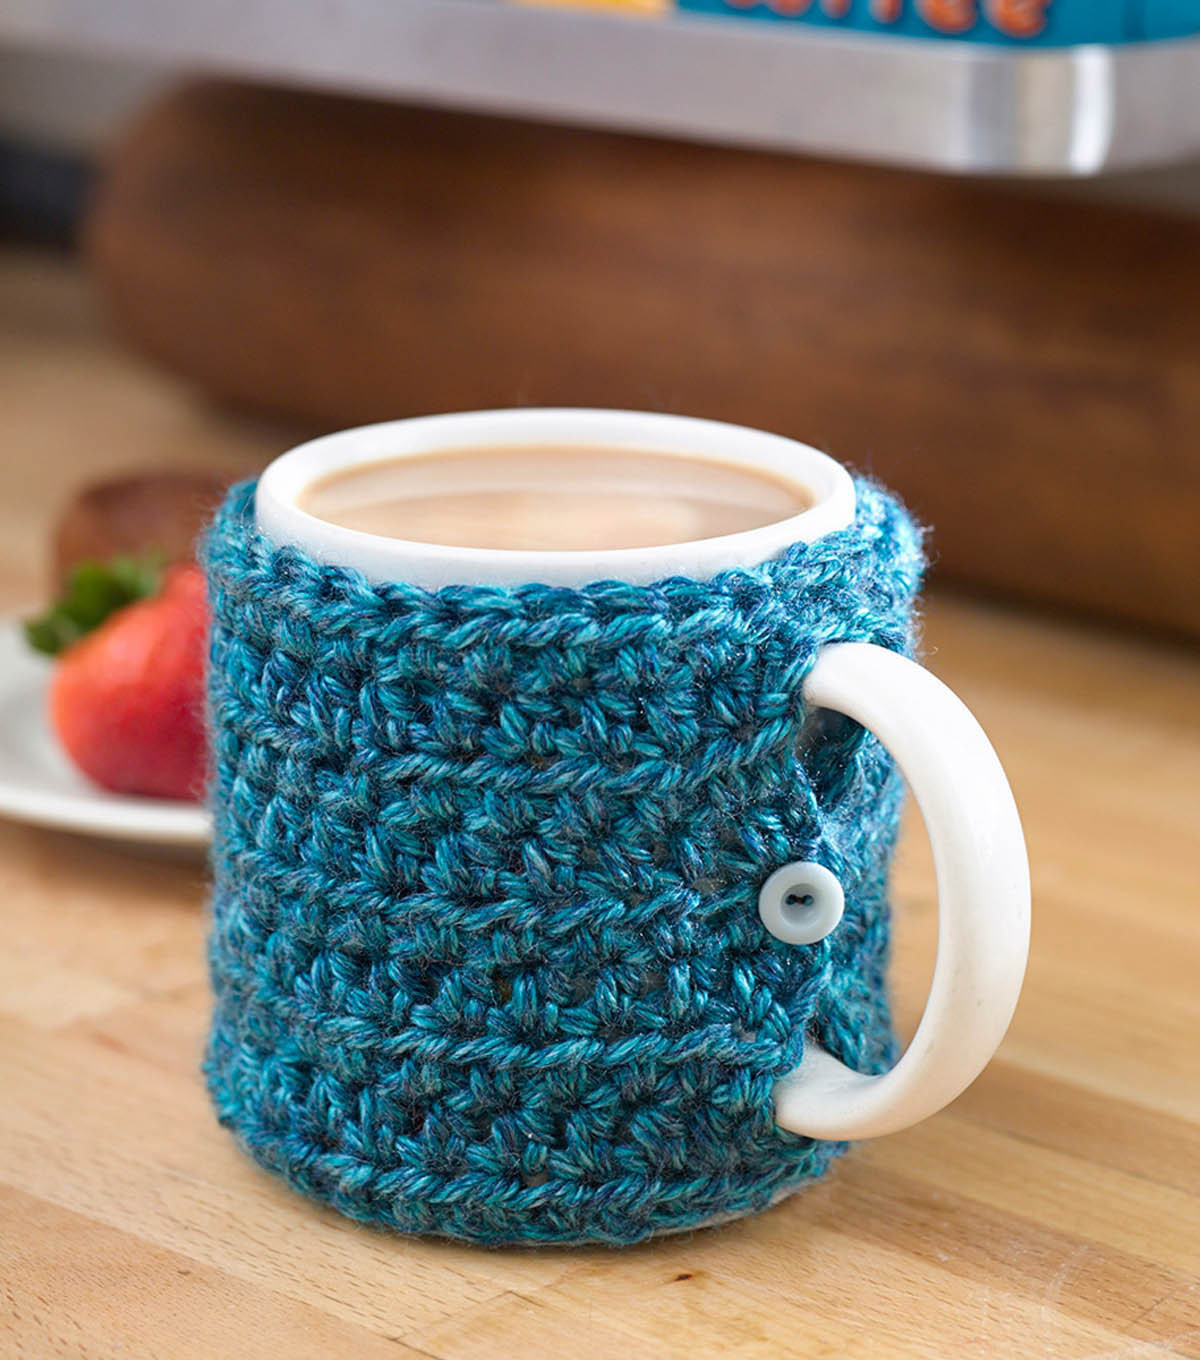 Crochet Coffee Cup Cozy Best Of Craftdrawer Crafts Free Easy to Crochet Mug Cozy Patterns Of Crochet Coffee Cup Cozy Awesome Textured Coffee Mug Cozy Crochet Pattern